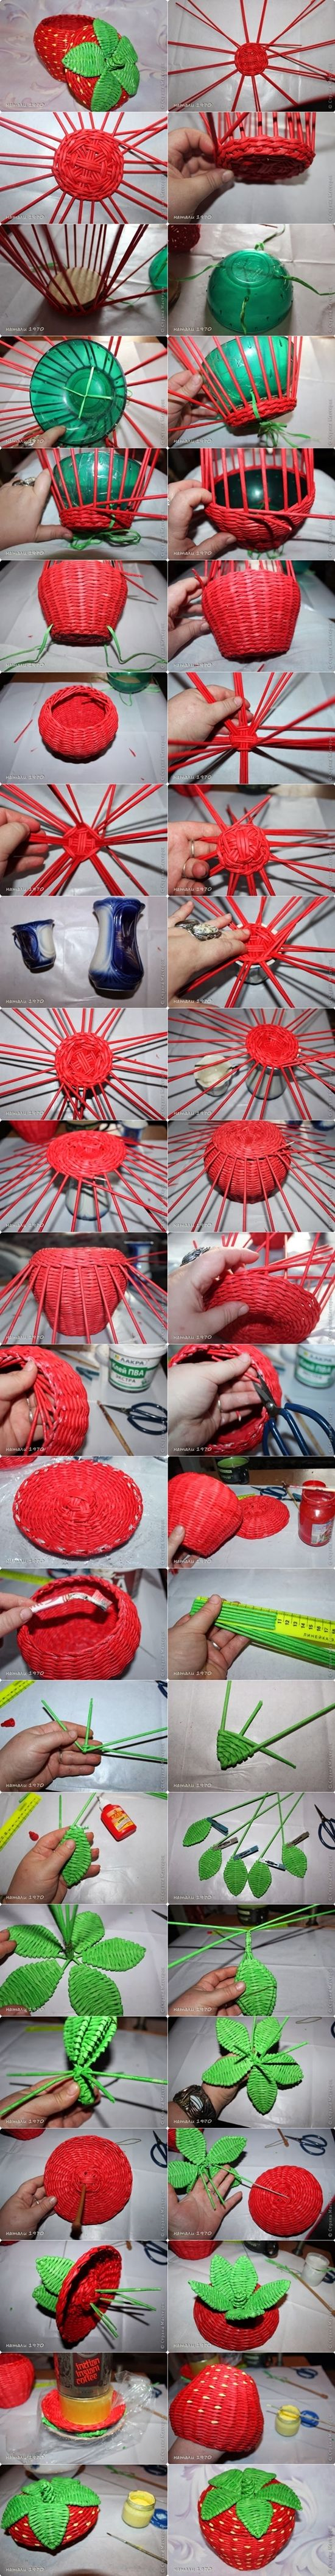 Make a cute Strawberry Basket from Recycled Newspaper ! #diy #crafts